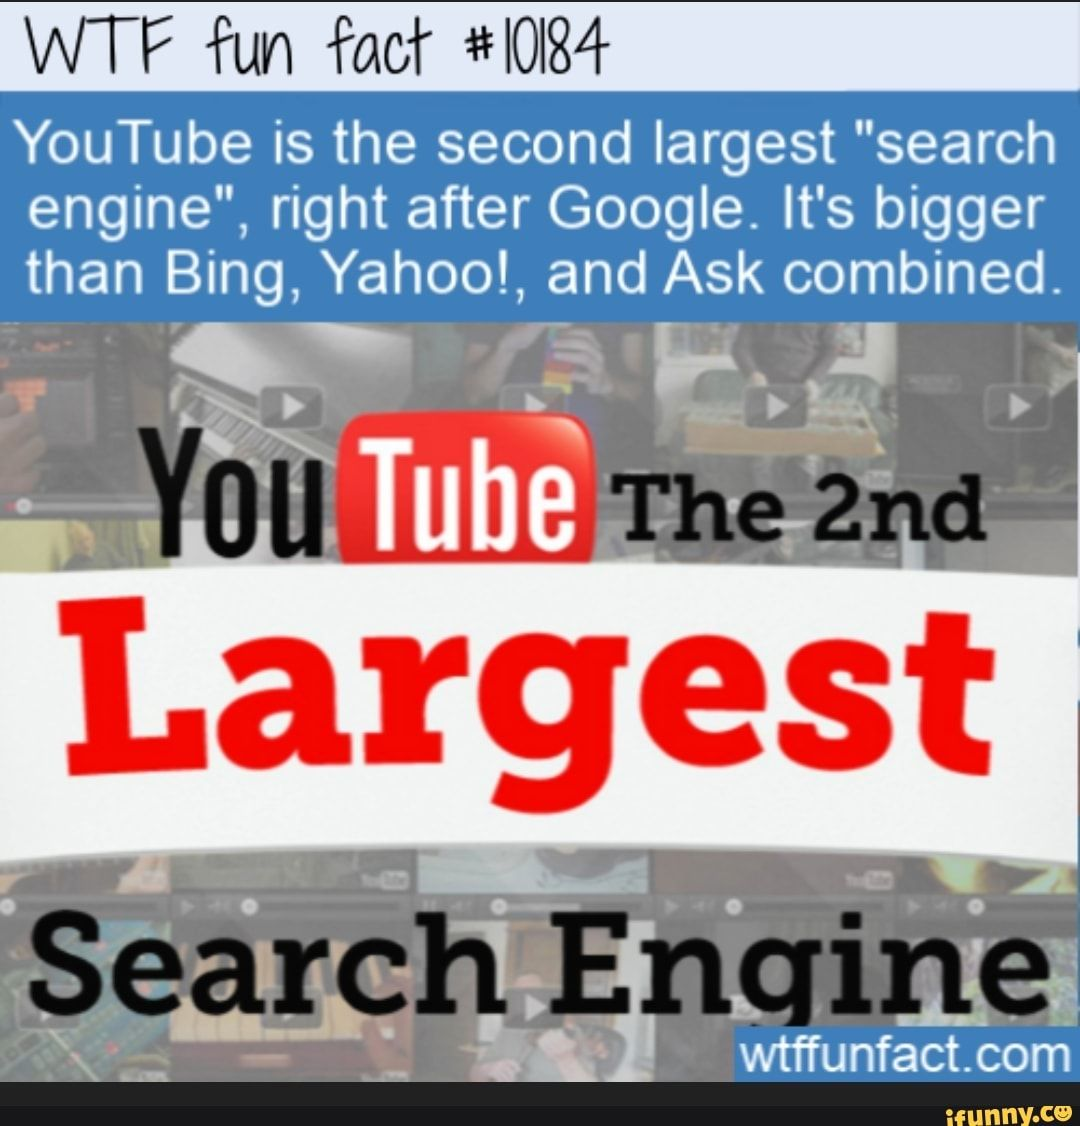 Wtf Fun Wºaof 4 I0i84 Youtube Is The Second Largest Search Engine Right After Google It S Bigger Than Bing Yahoo And Ask Combined Ifunny Youtube Search Engine Wtf